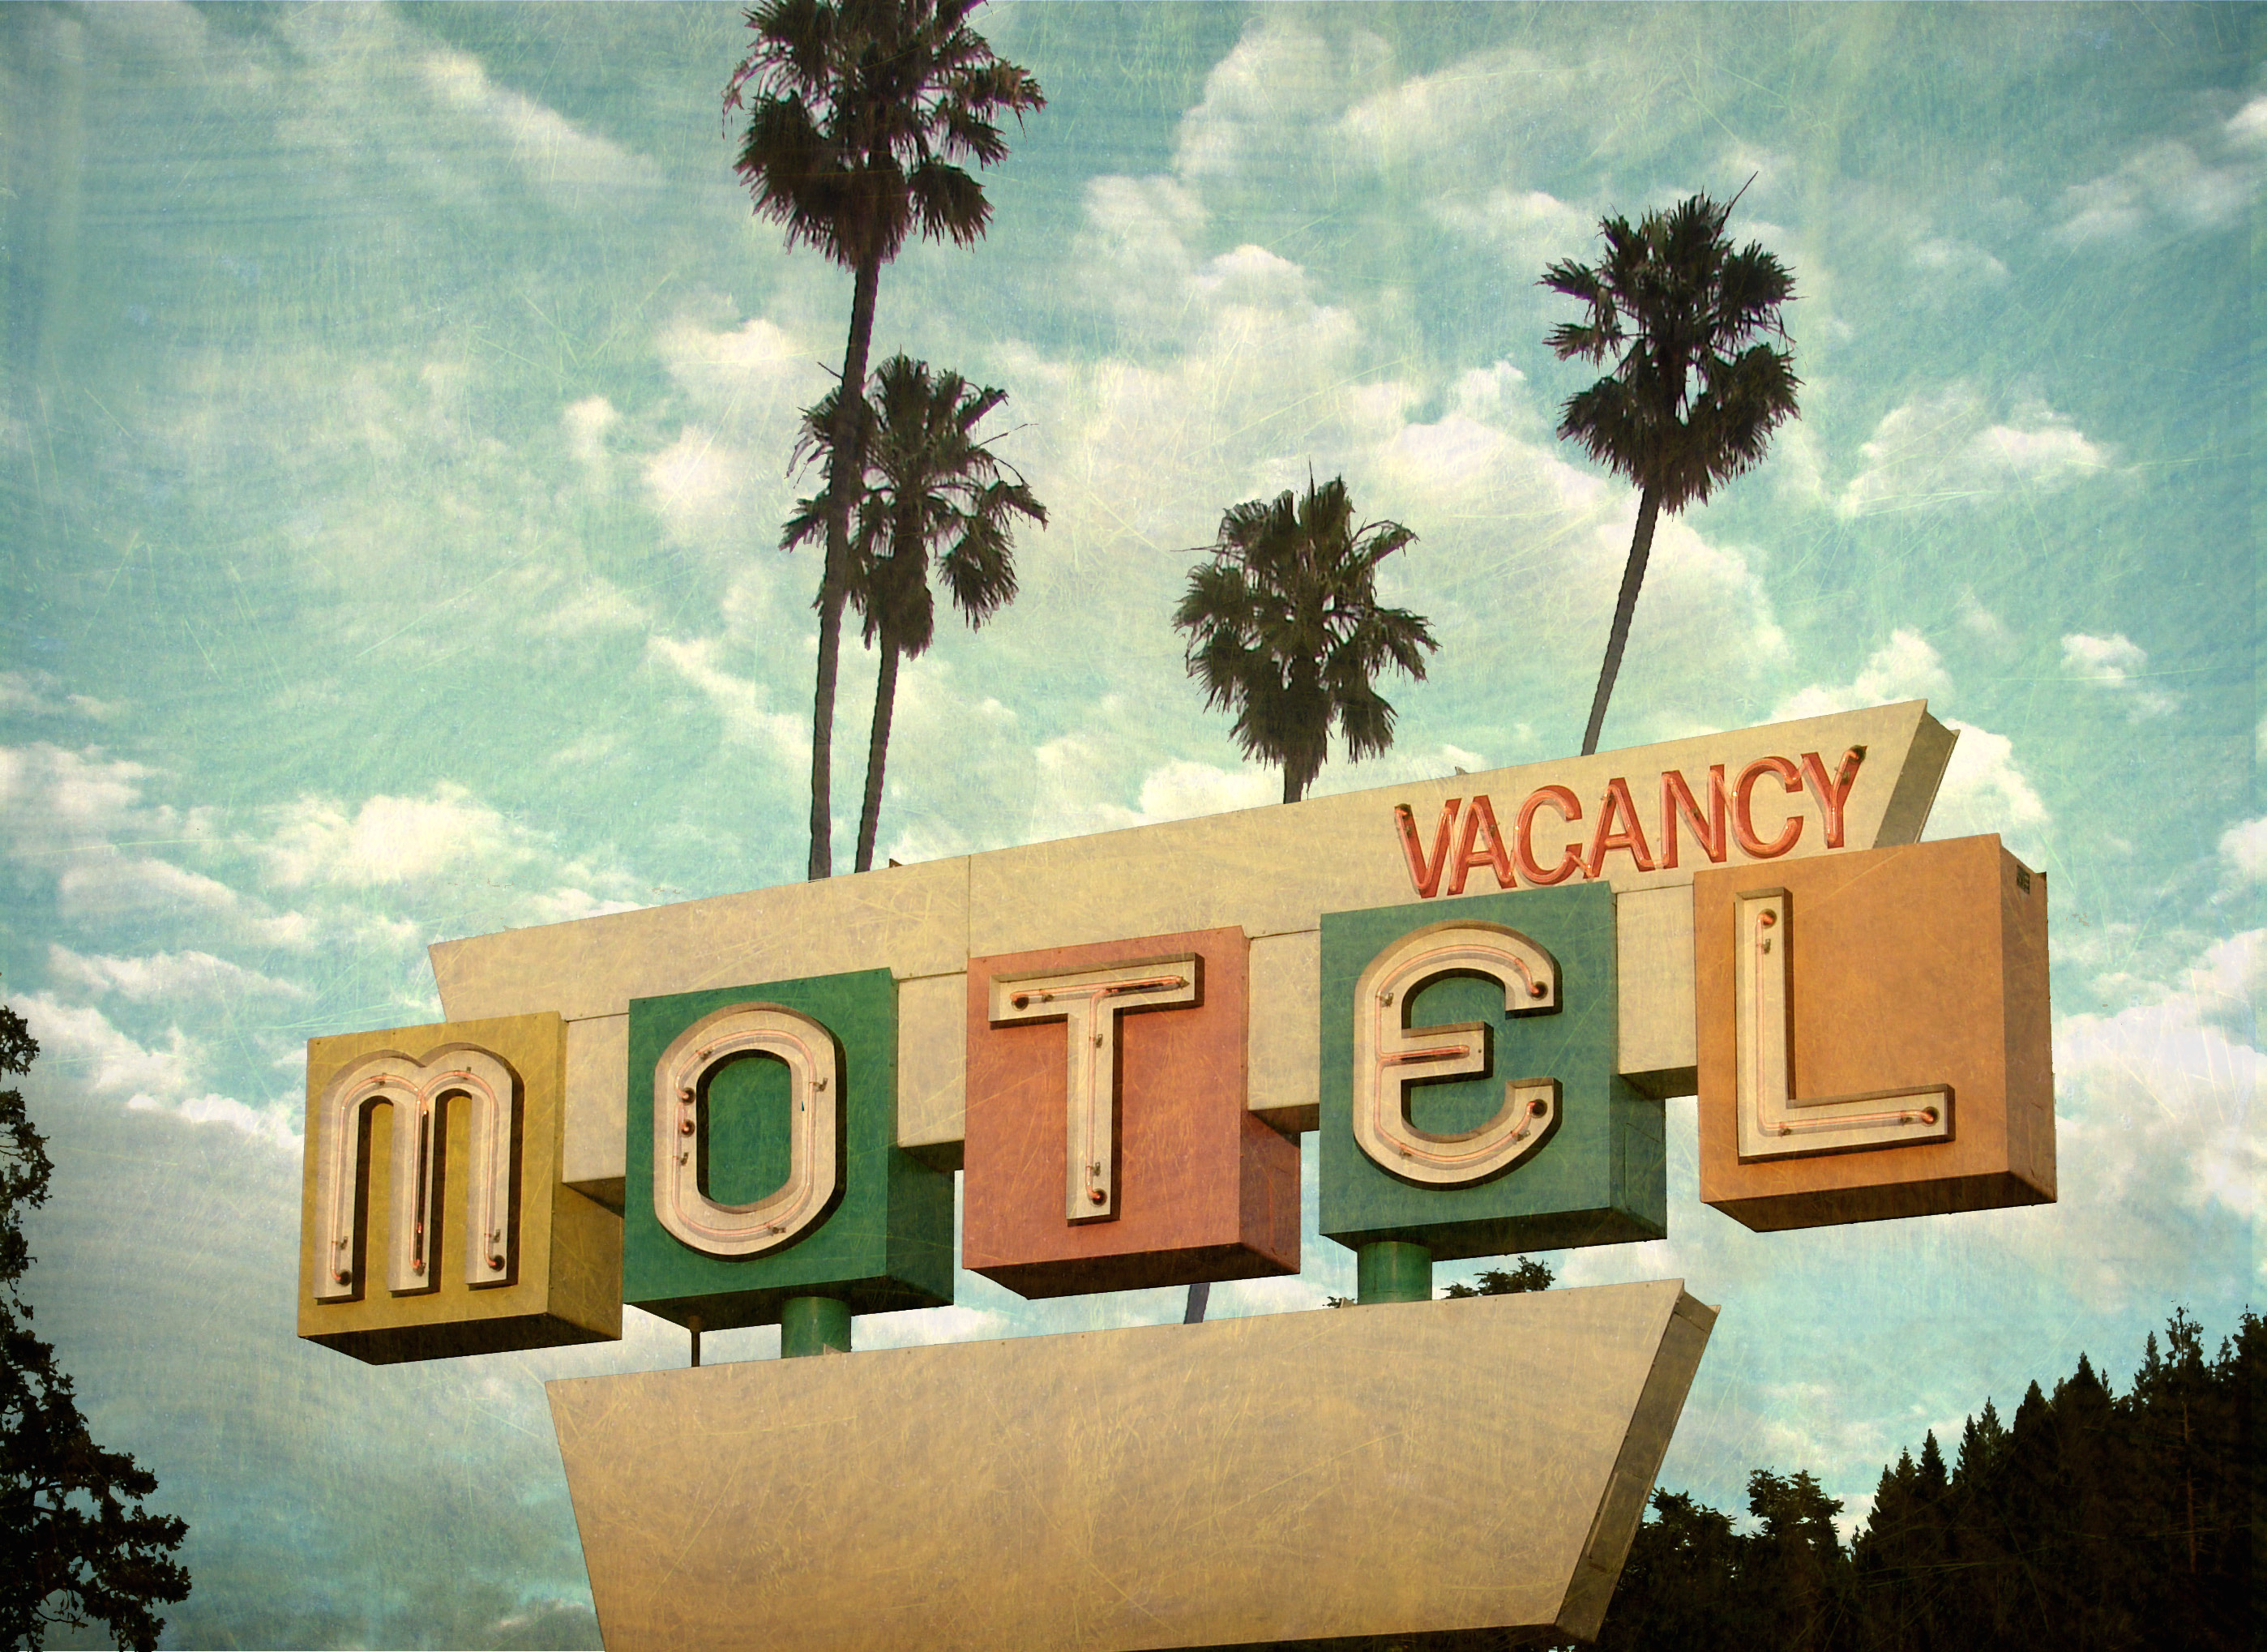 Ged And Worn Vintage Photo Of Retro Motel Sign With Palm